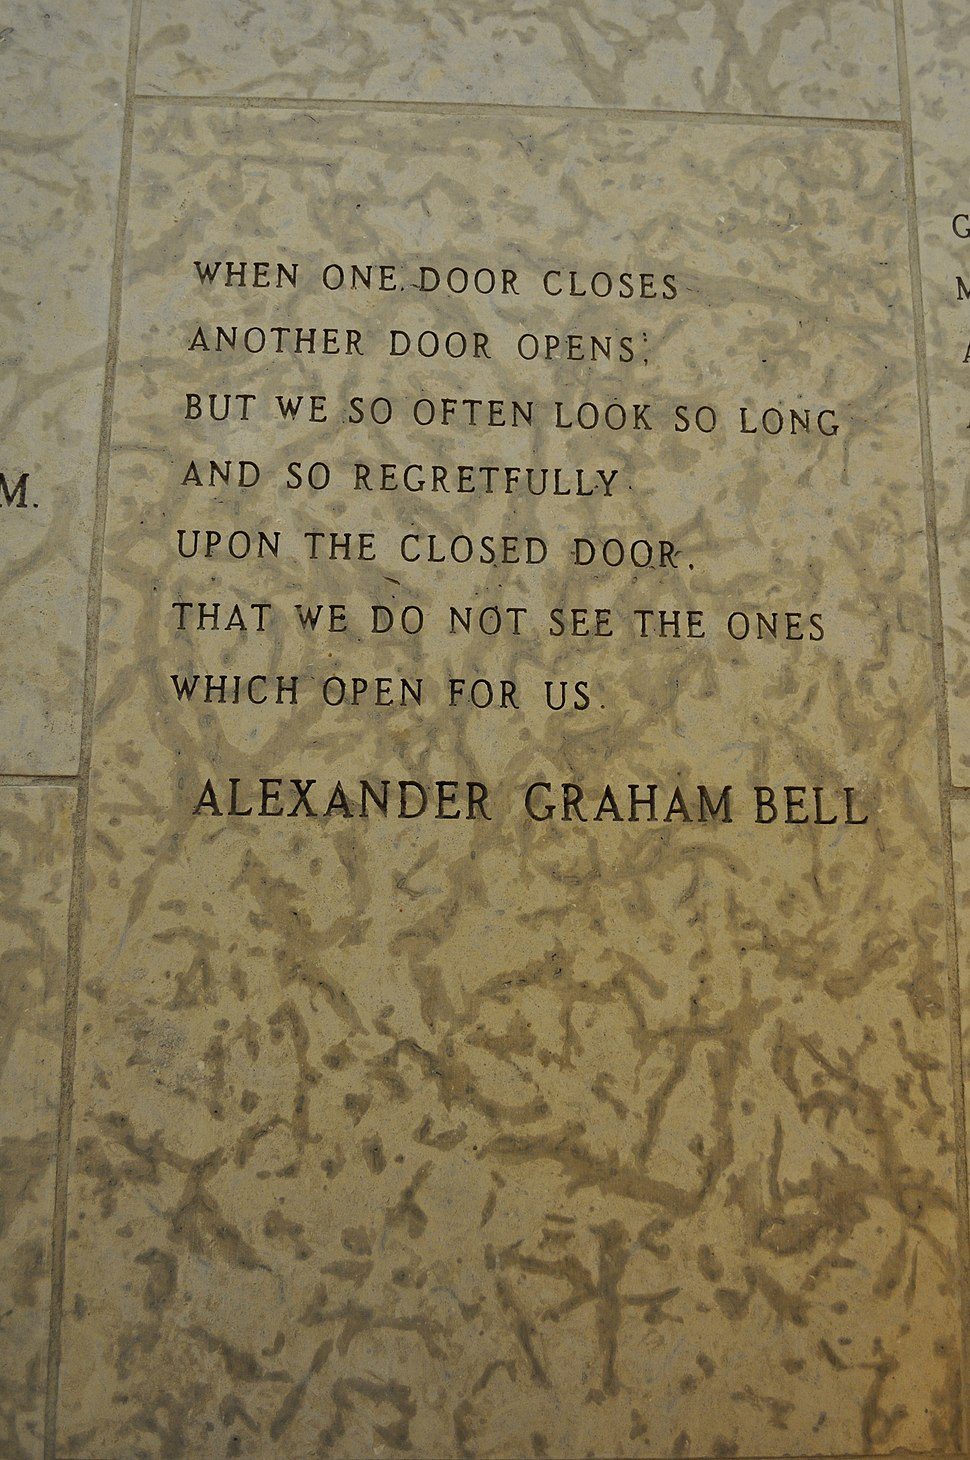 Alexander Graham Bell Quote in stone